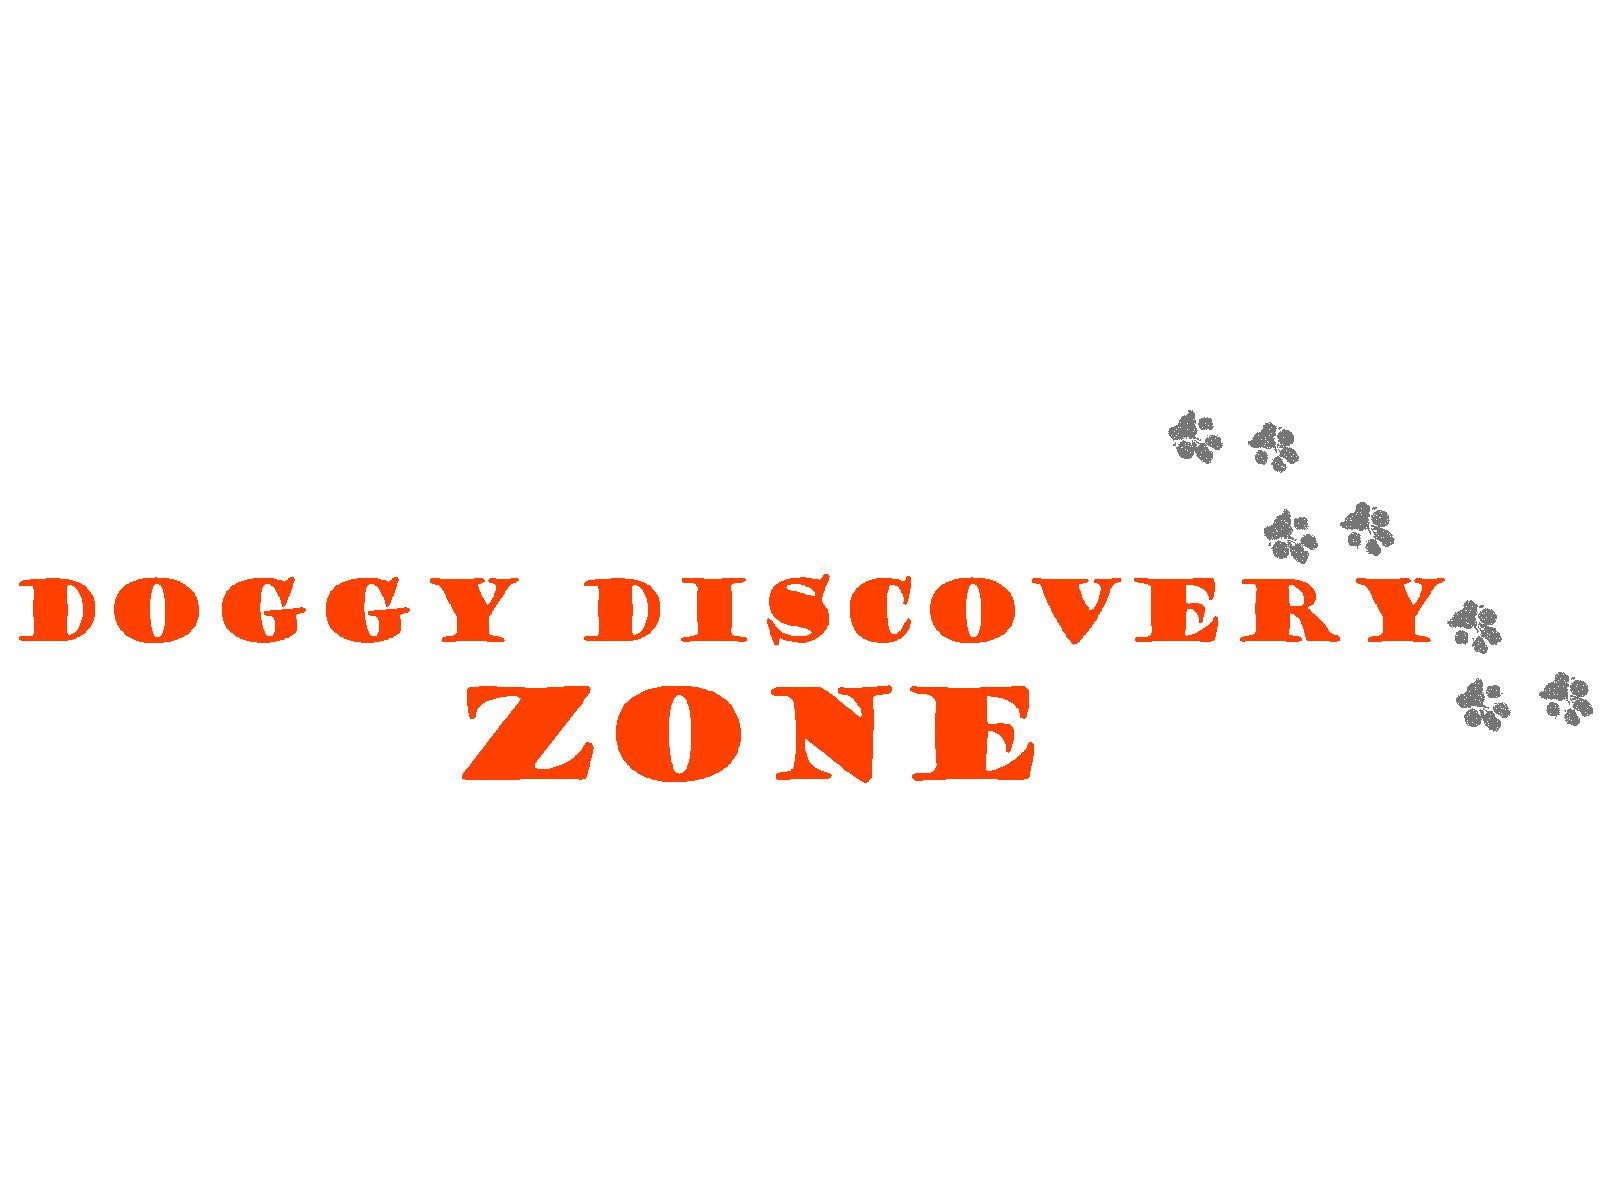 Doggy Discovery Zone